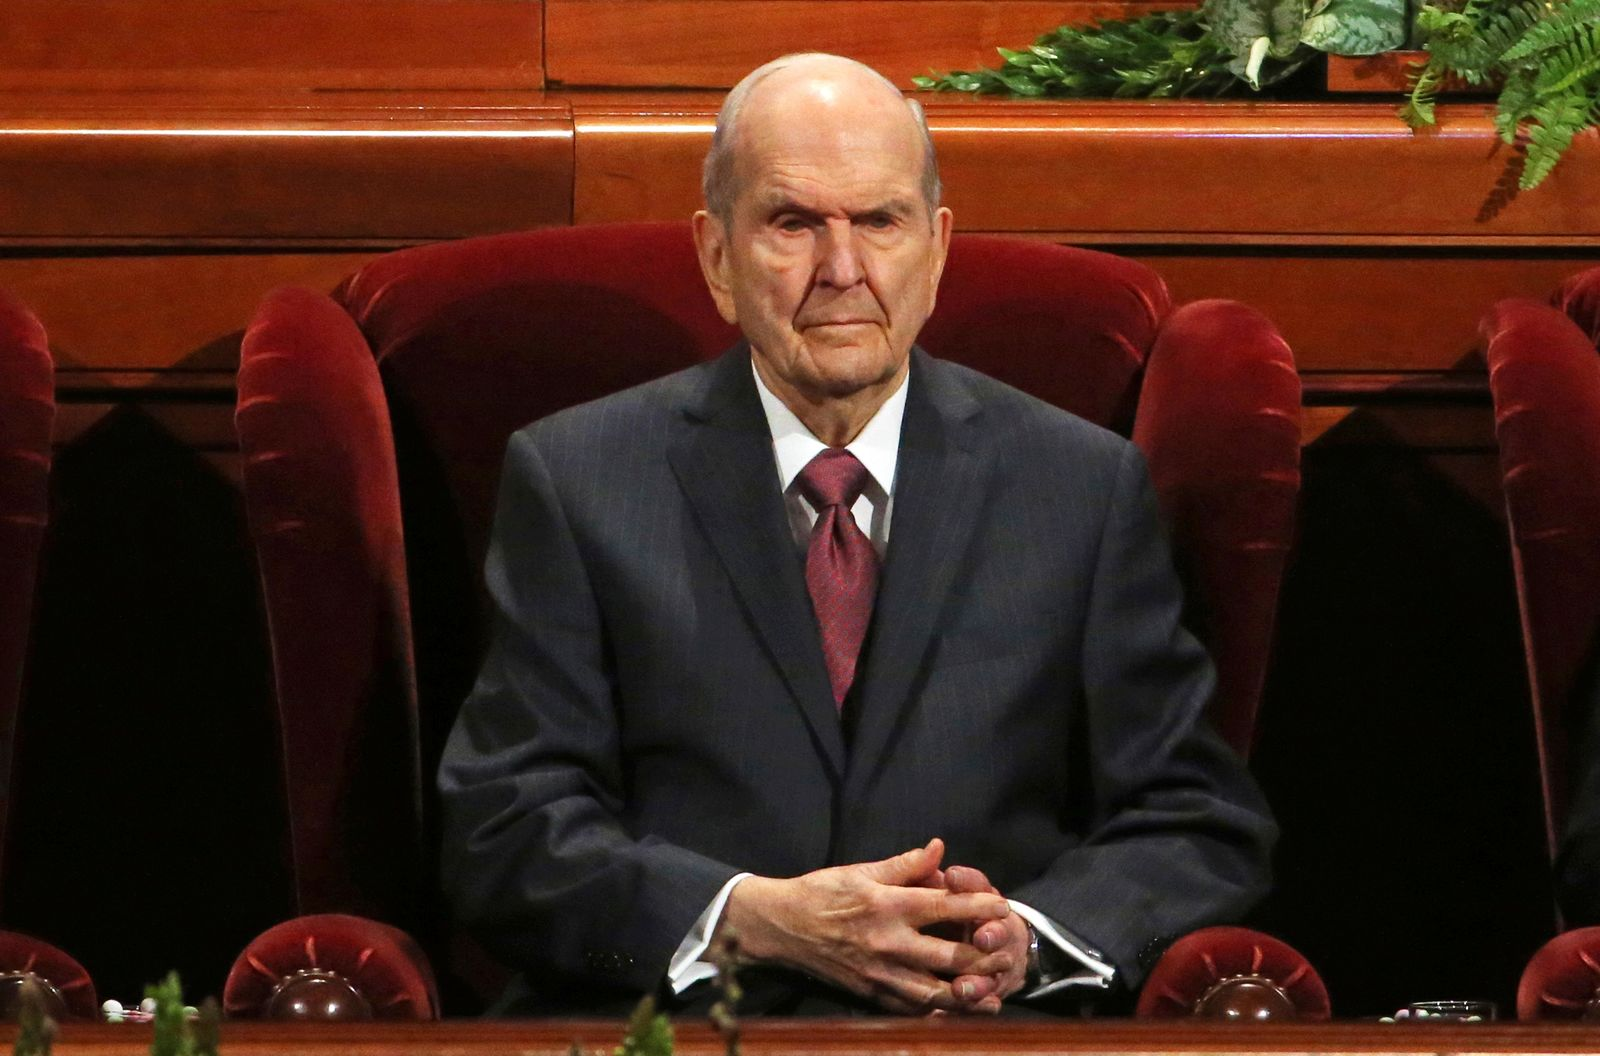 Church President Russell M. Nelson looks on during The Church of Jesus Christ of Latter-day Saints' conference Saturday, April 6, 2019, in Salt Lake City. Church members are preparing for more changes as they gather in Utah for a twice-yearly conference to hear from the faith's top leaders. (AP Photo/Rick Bowmer)